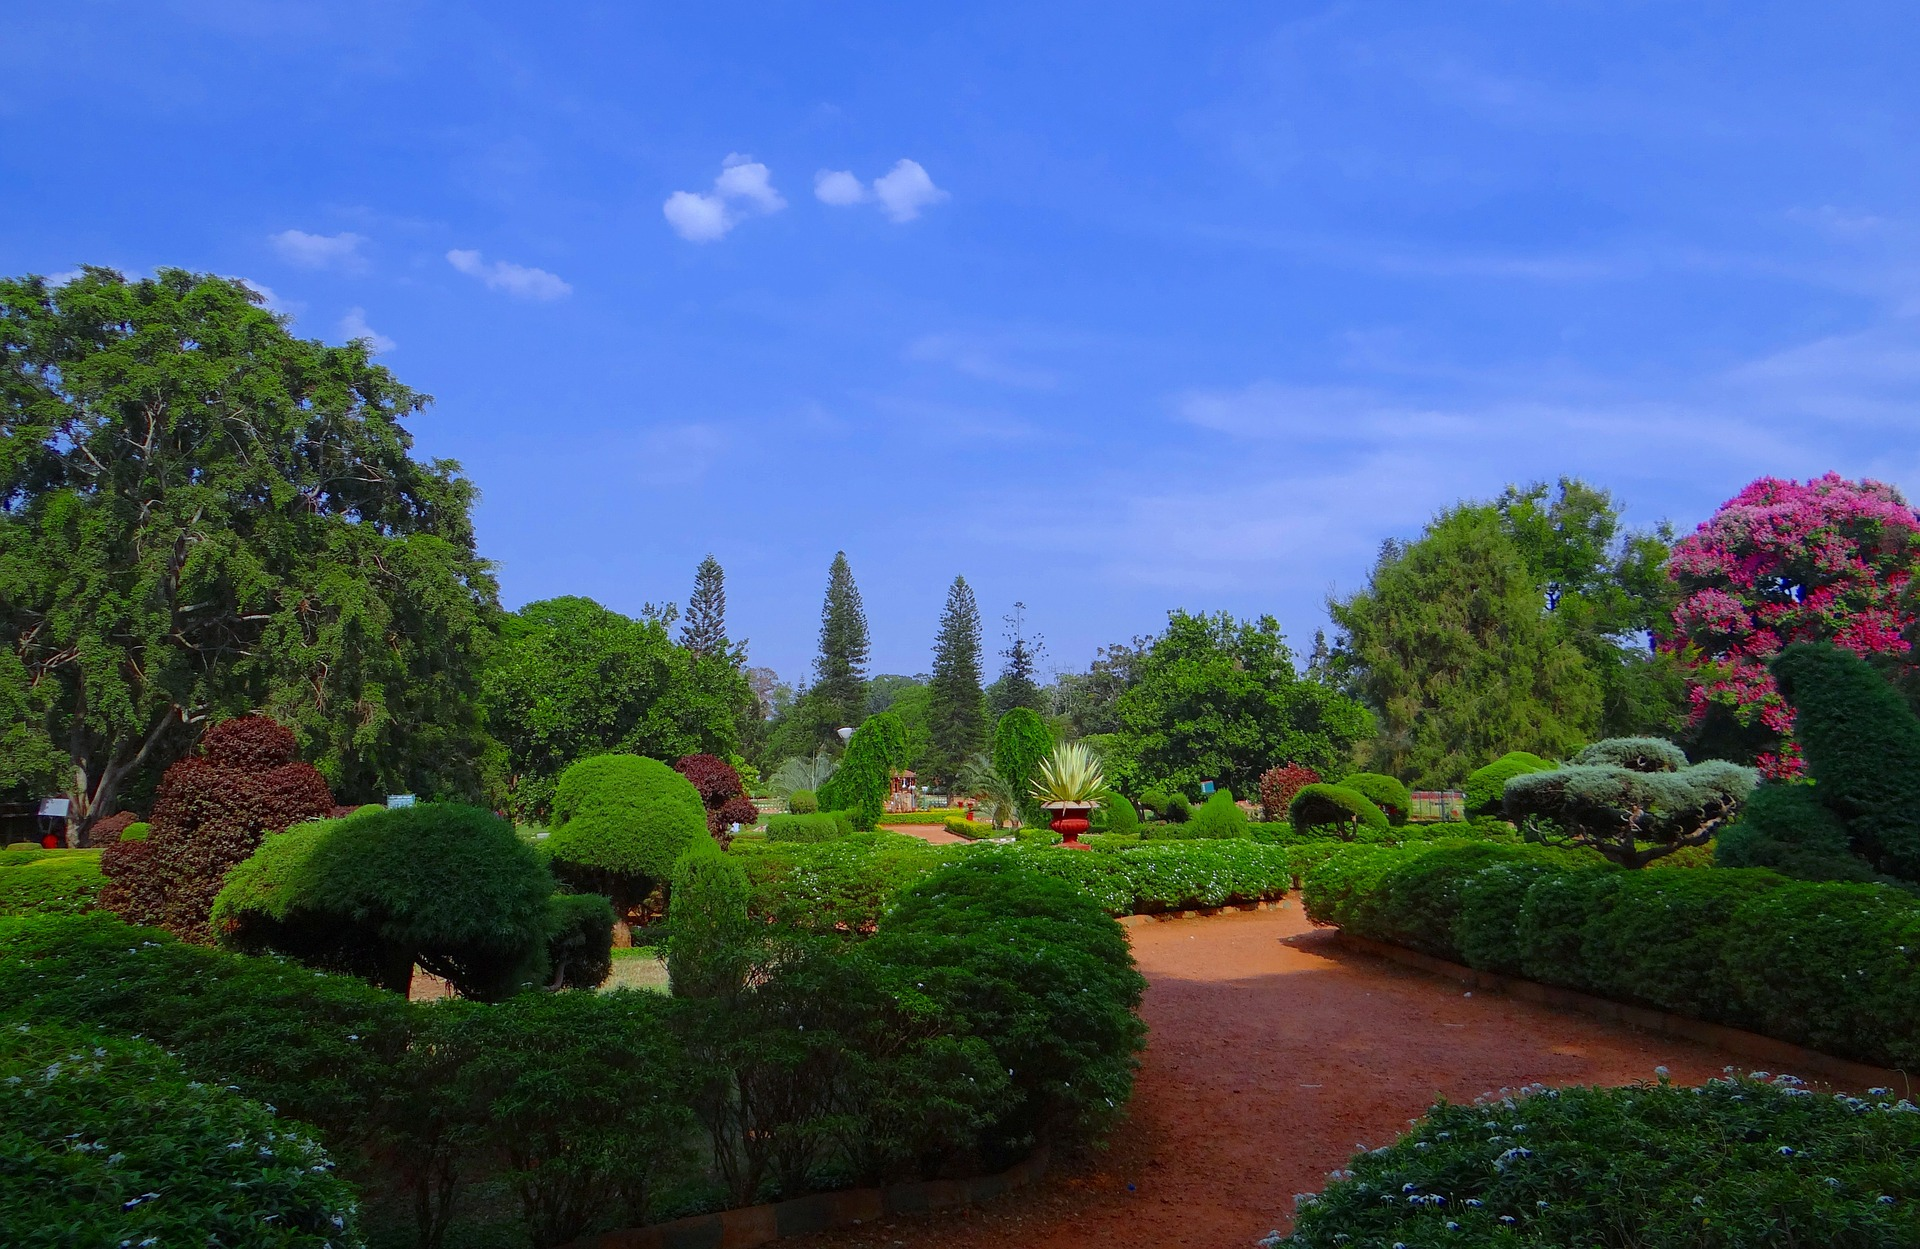 Grand Discovery of India - Botanical Garden, Bangalore, India